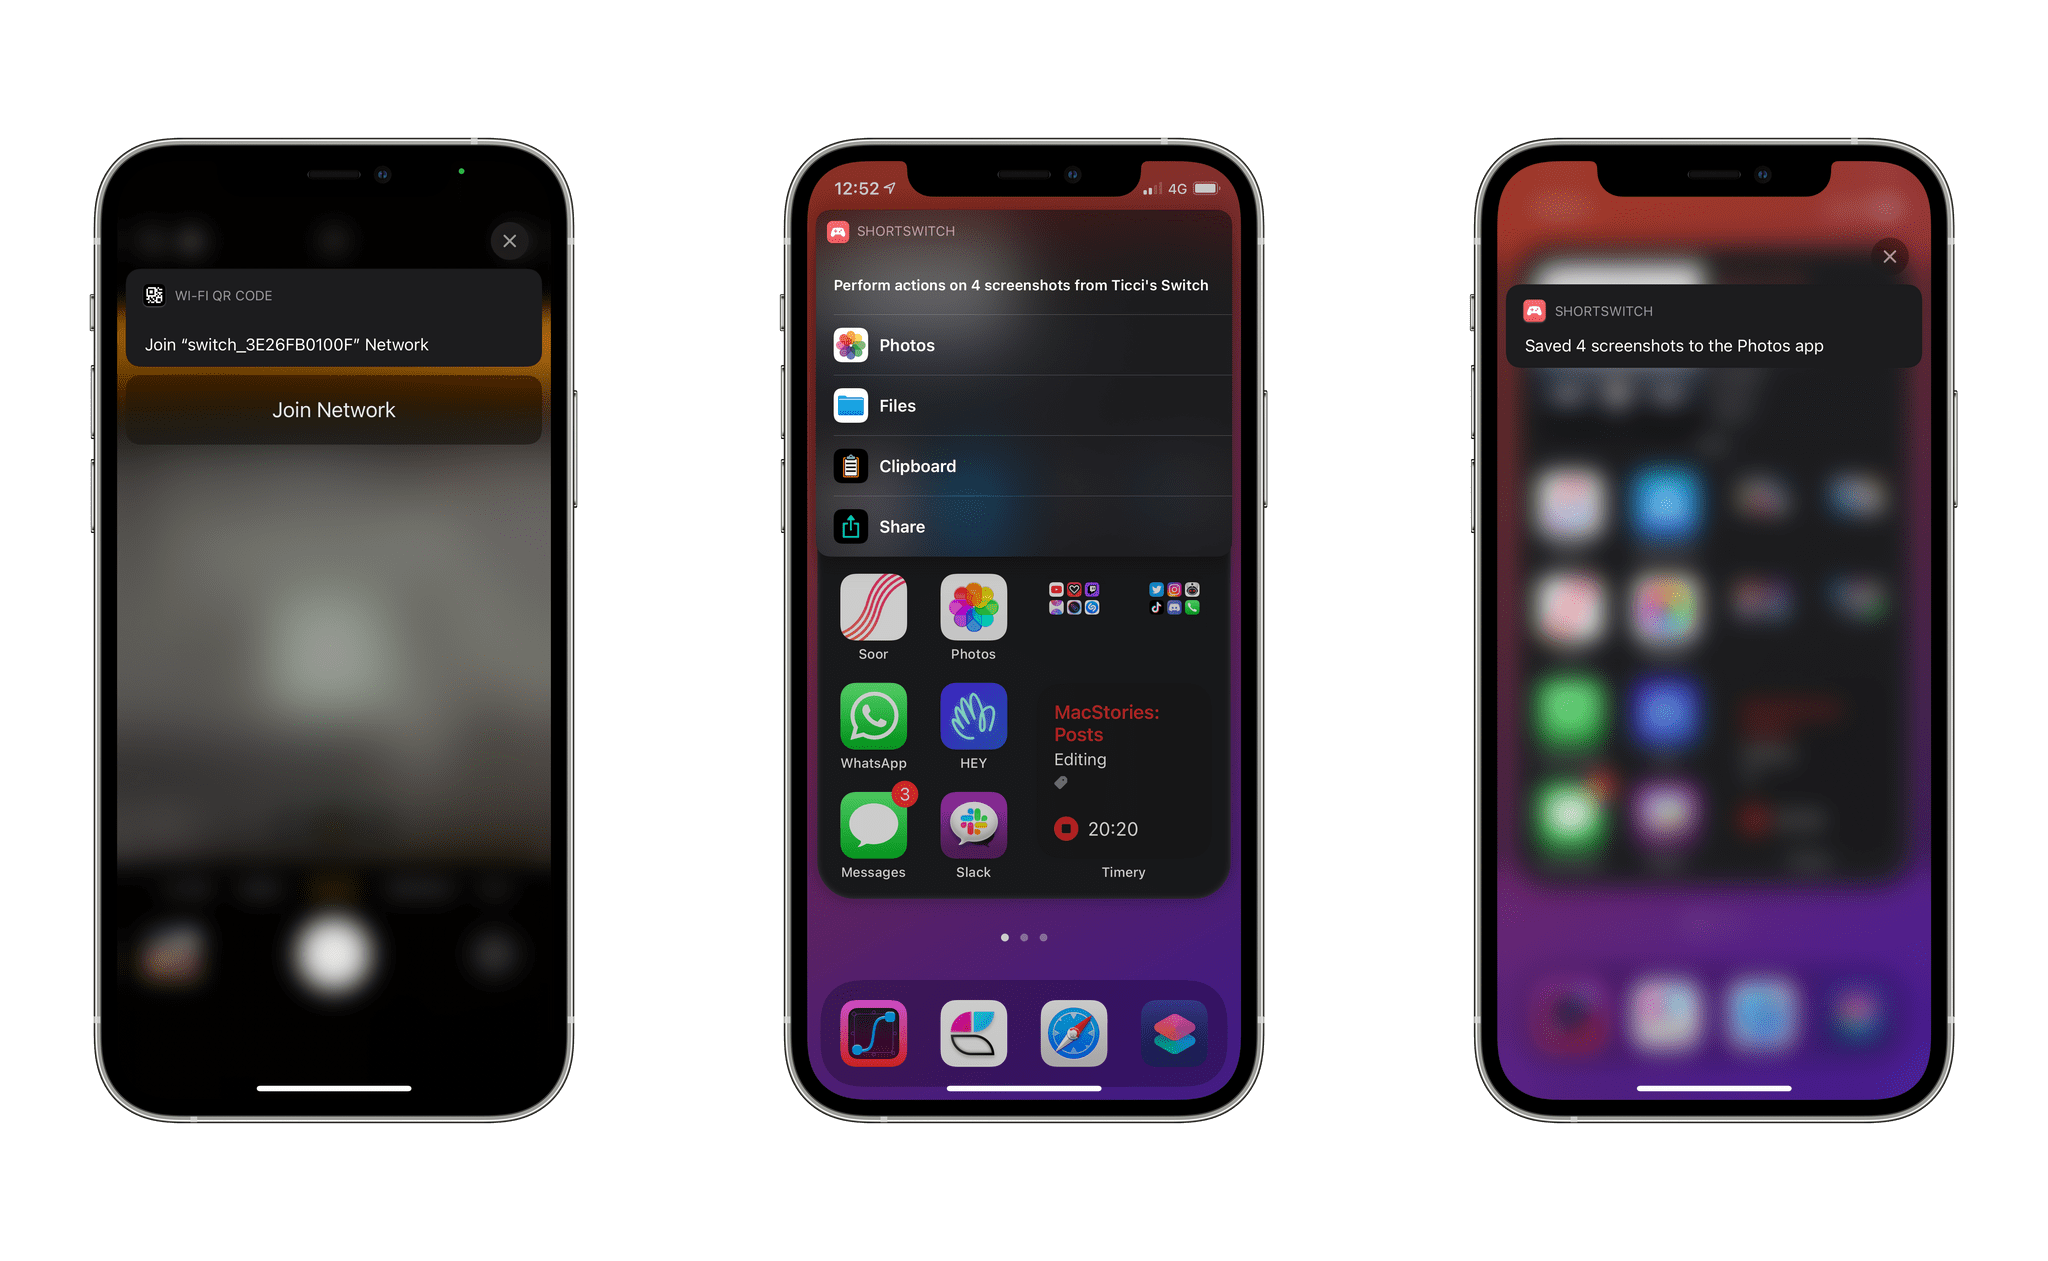 ShortSwitch for iOS 14.